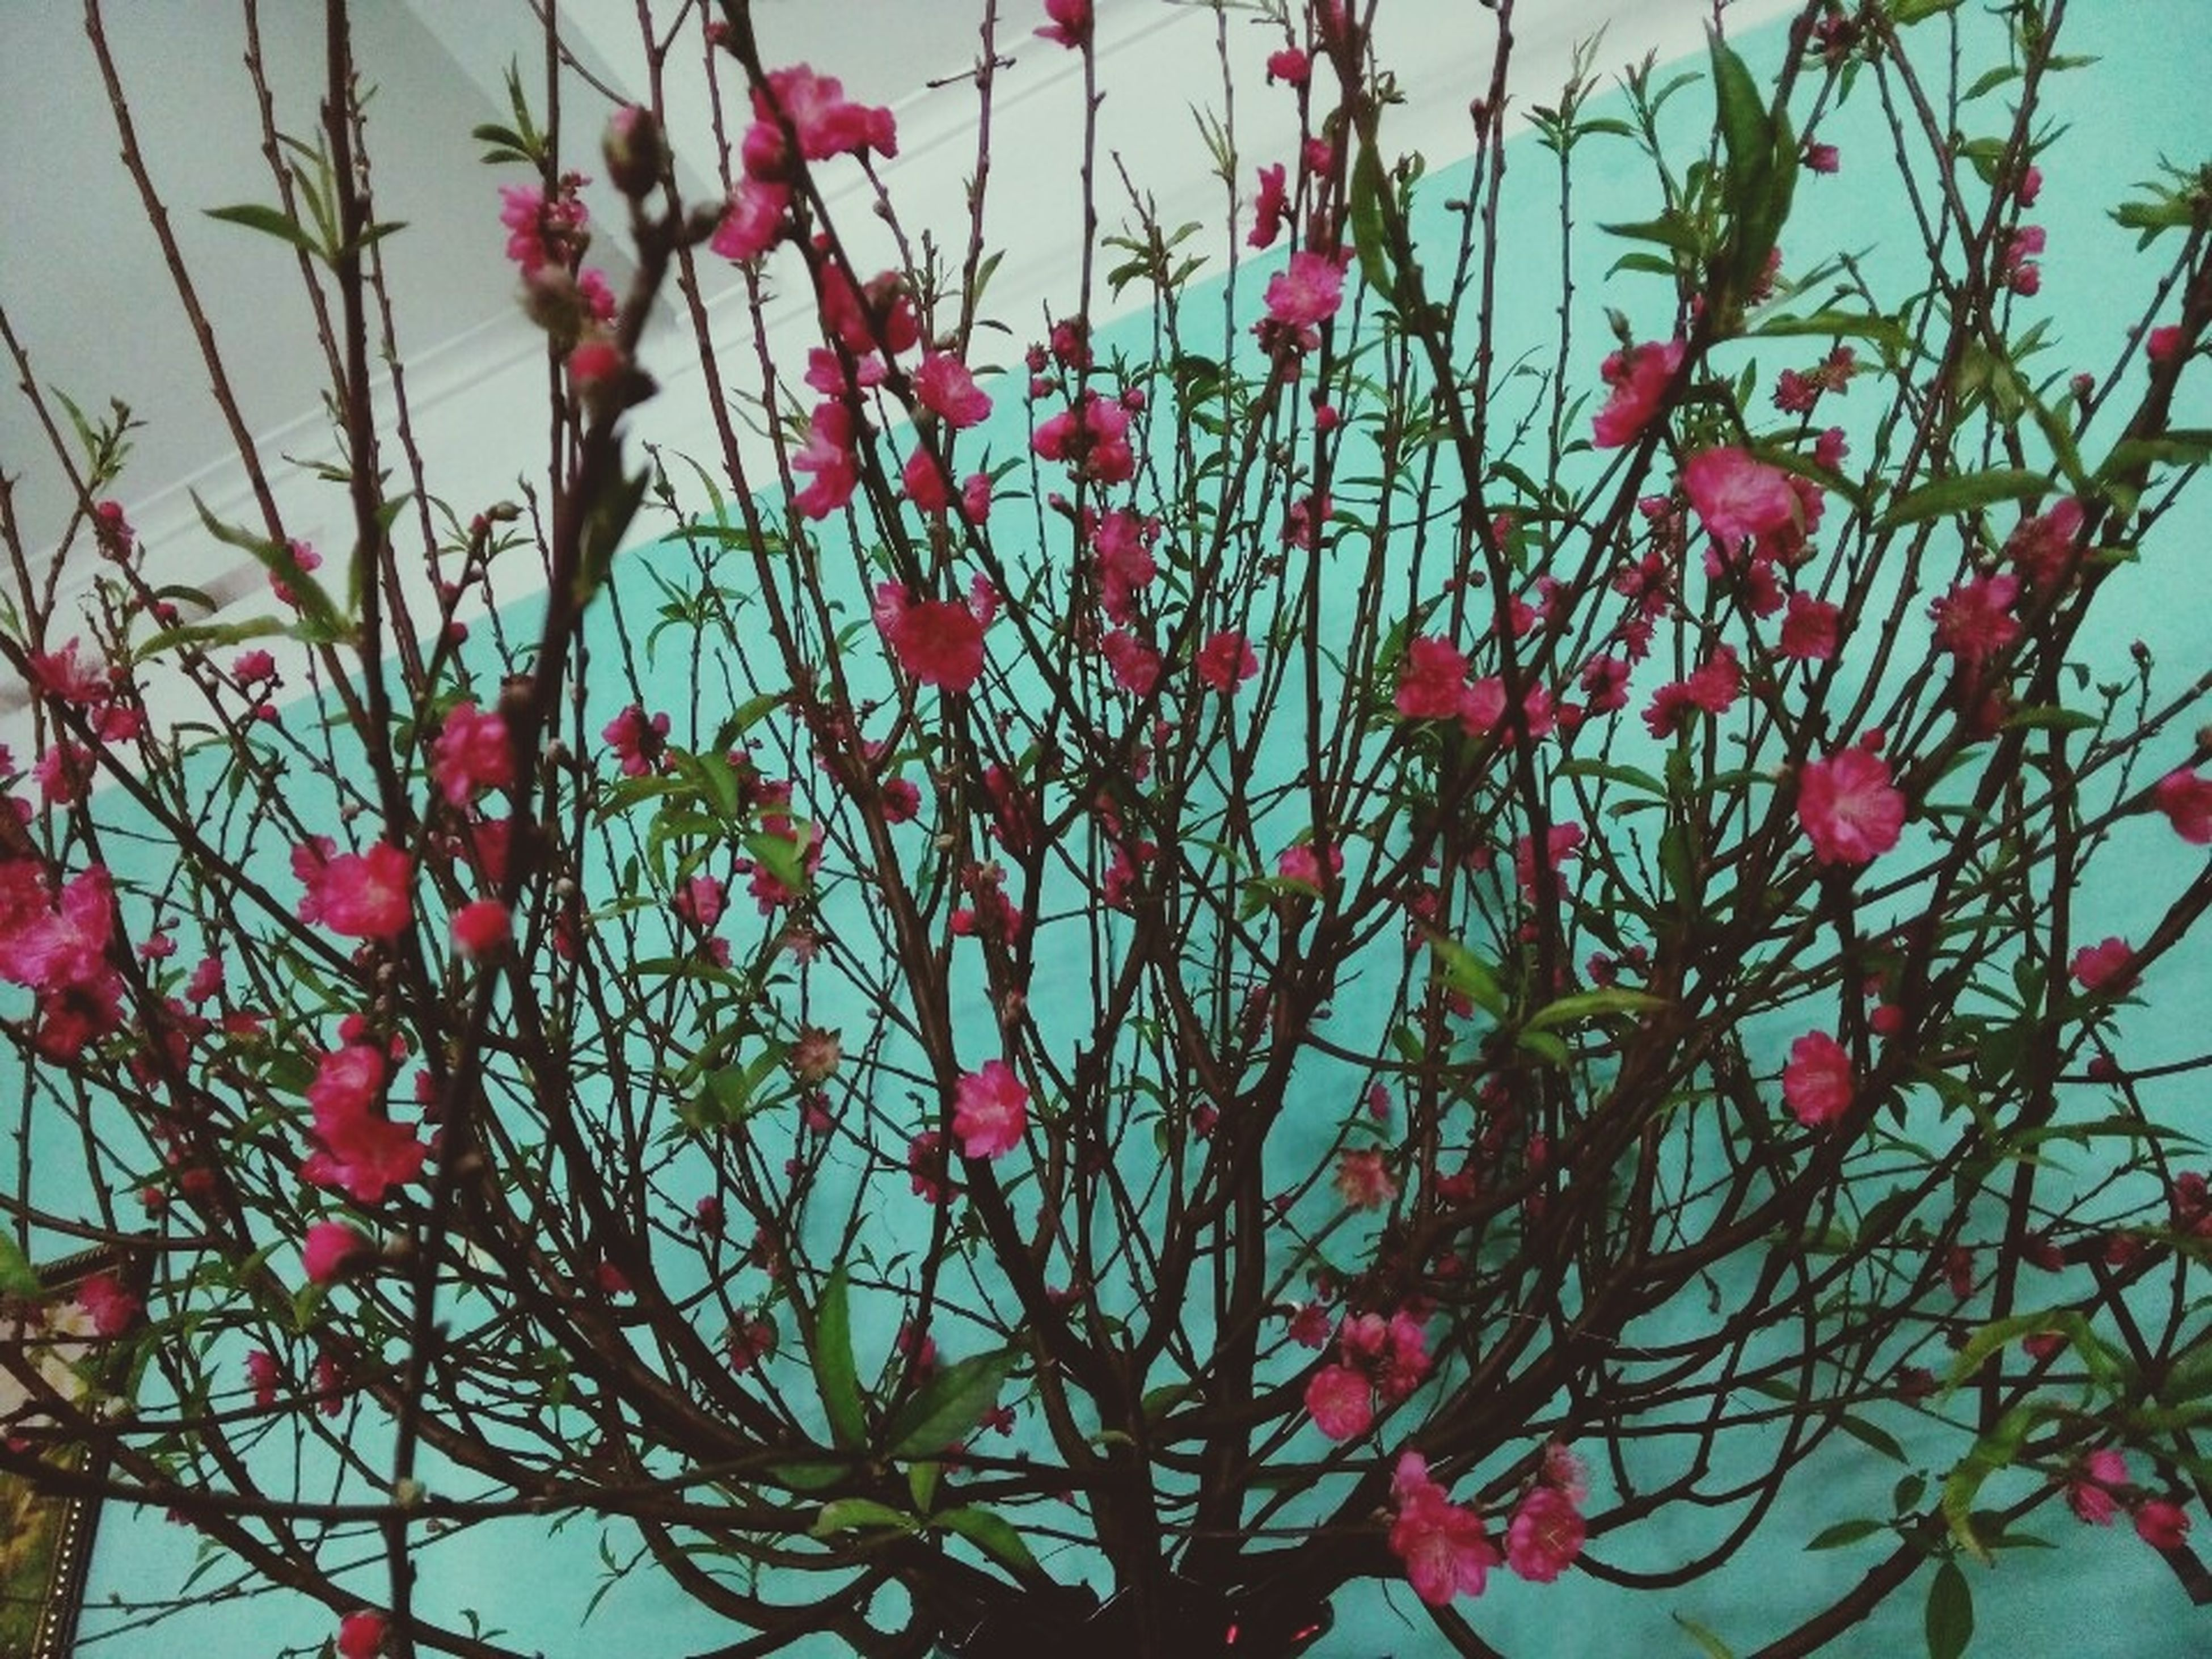 flower, freshness, low angle view, branch, growth, red, tree, pink color, nature, beauty in nature, fragility, clear sky, sky, plant, blossom, day, leaf, blooming, outdoors, no people